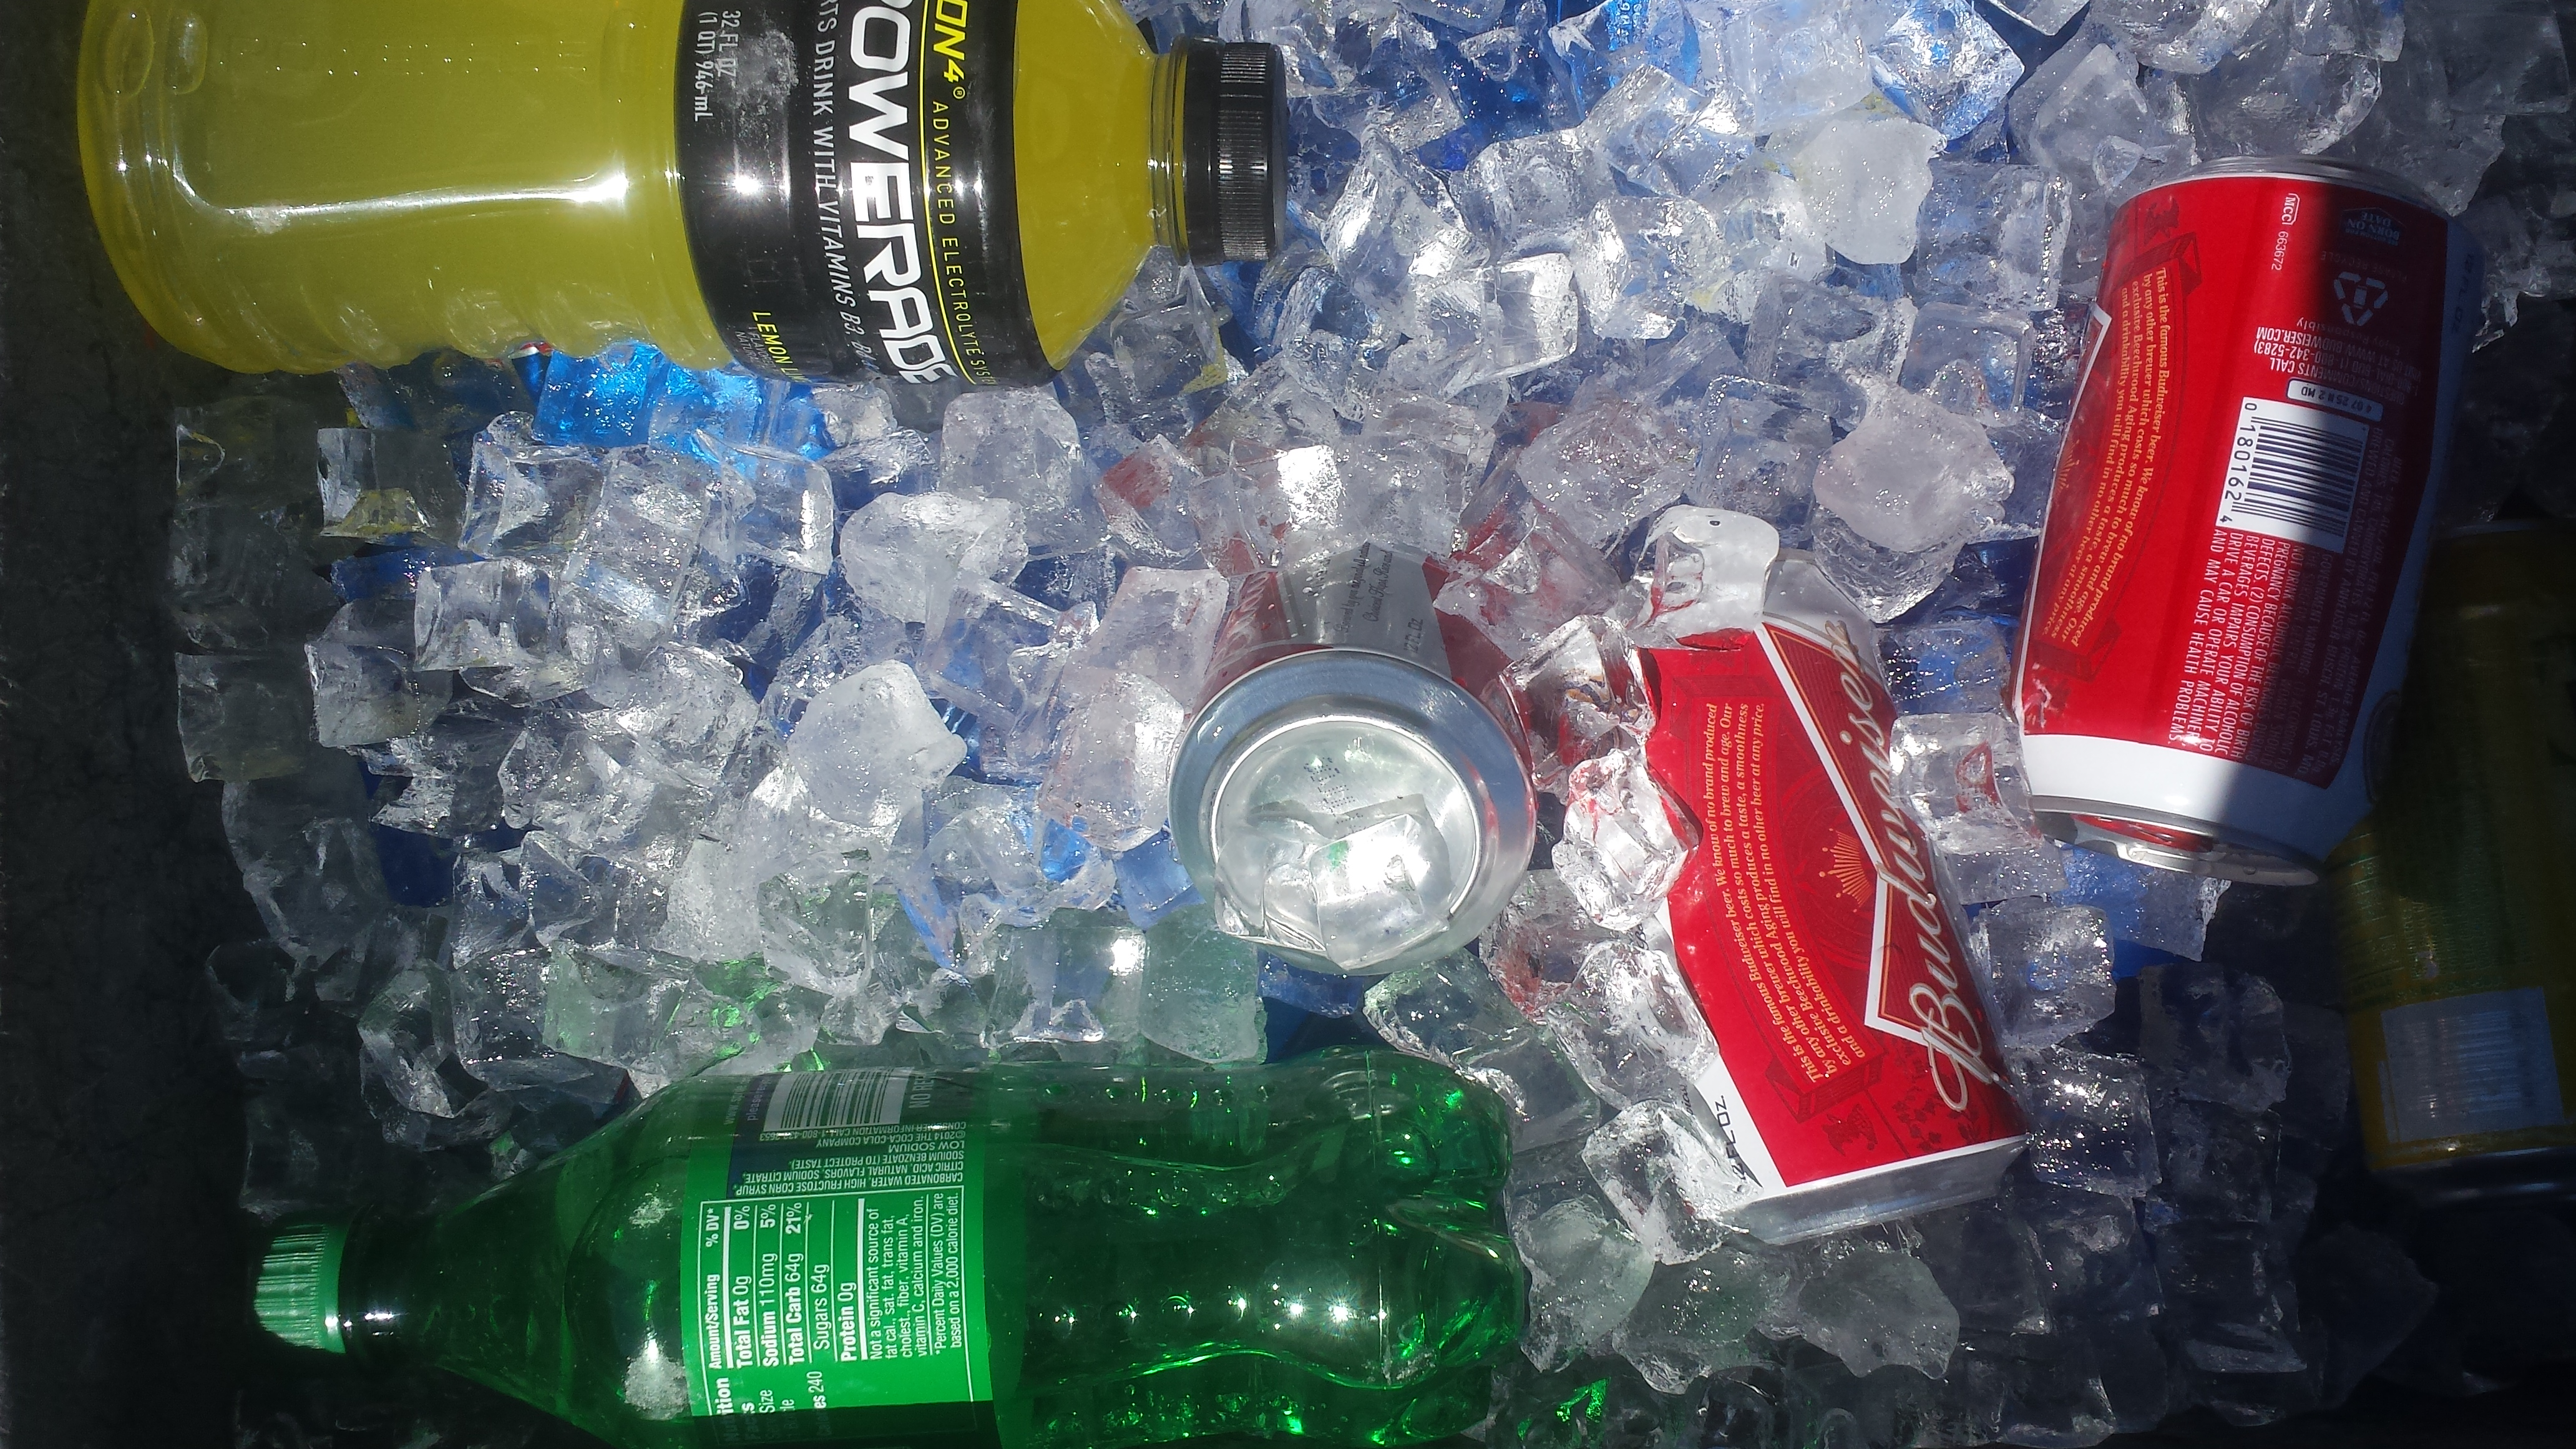 fc3e0d6466 File:Fishing cooler filled with ice and cold beverages.jpg ...